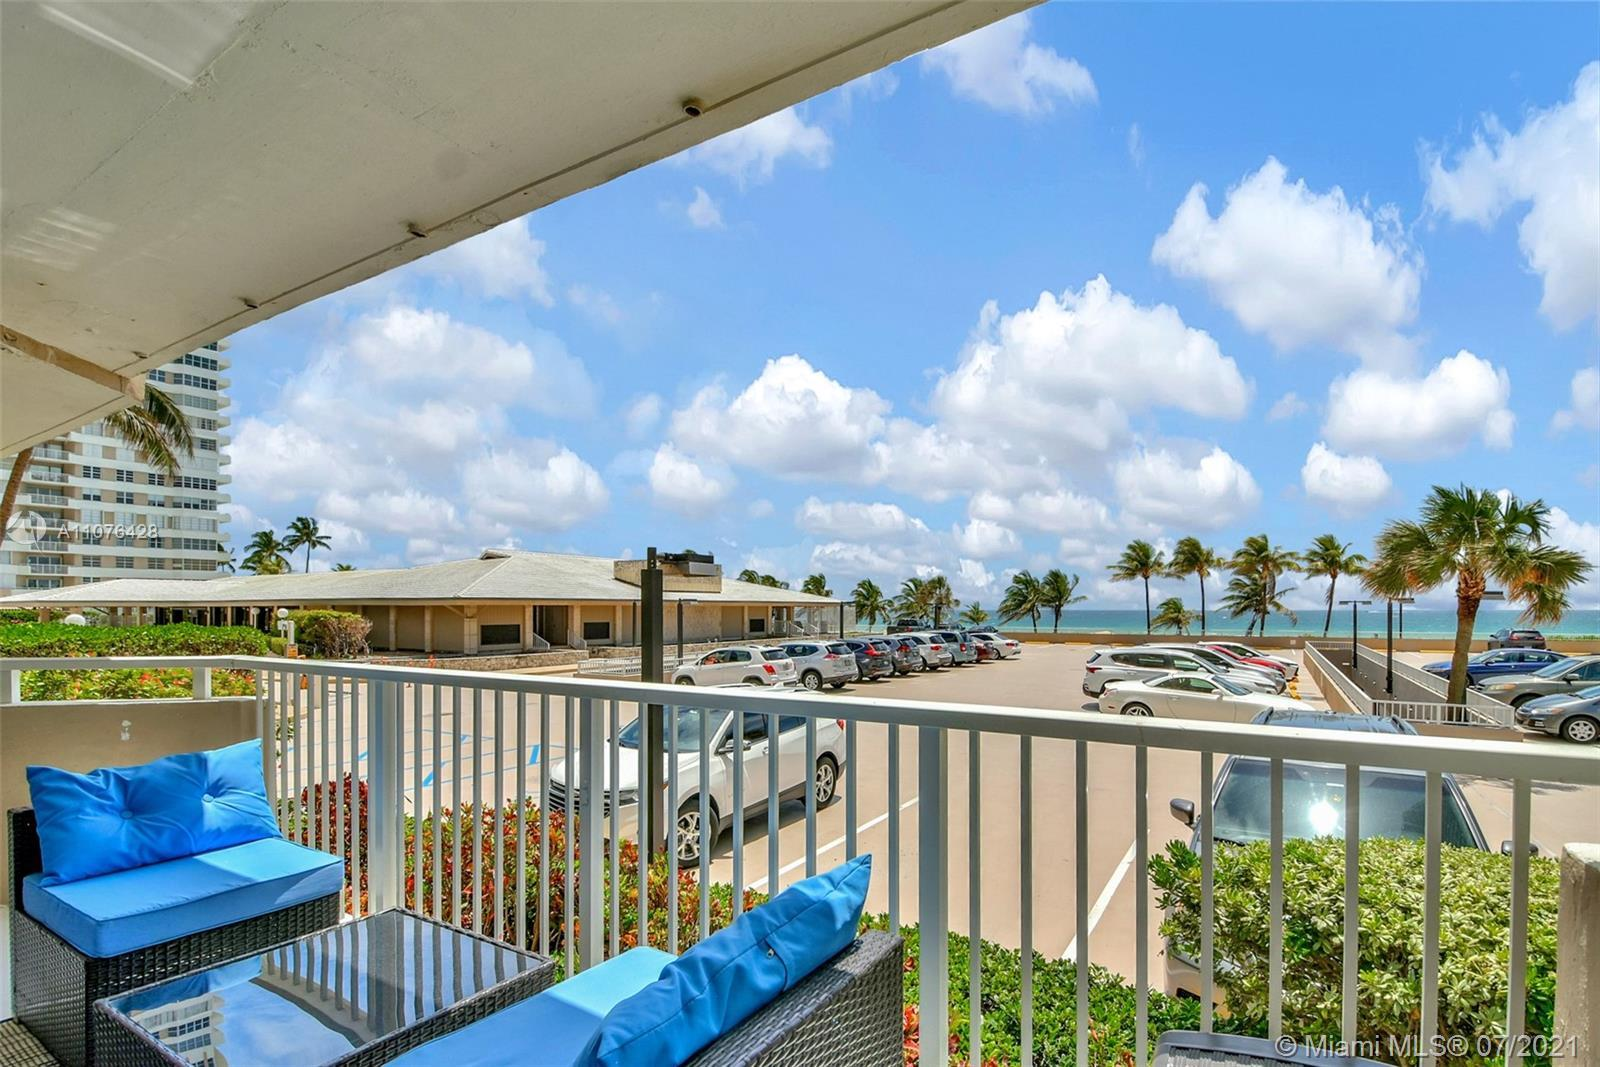 Remodeled Three bedroom, two and one half bath corner Ocean Front unit at the Hemispheres. This unit